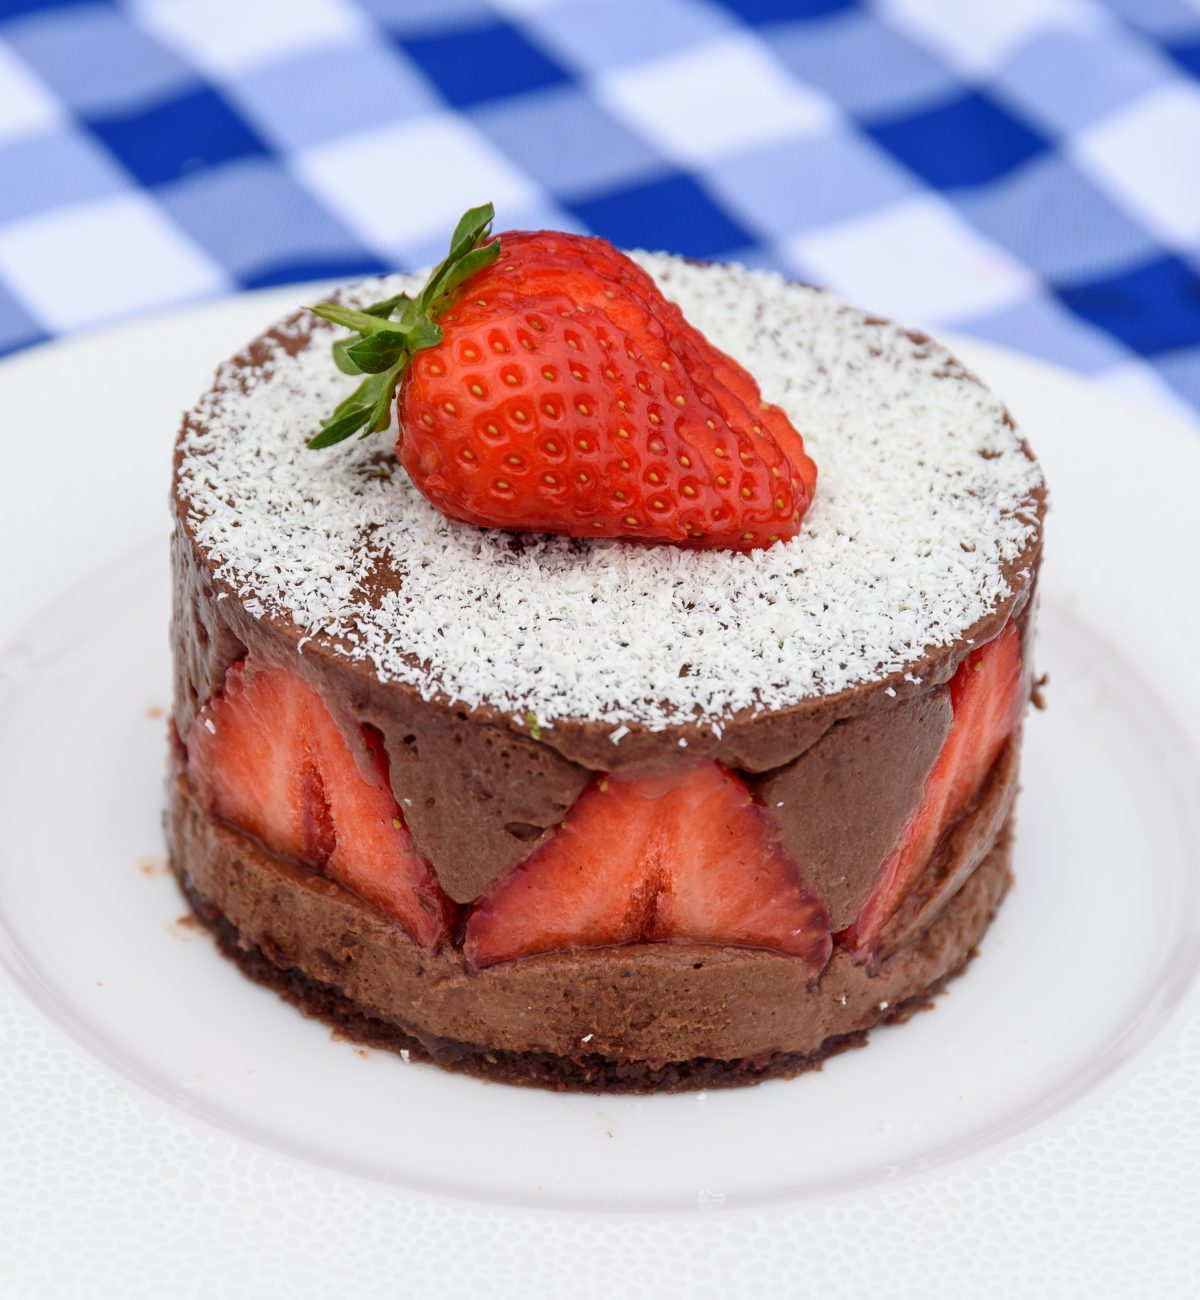 Strawberry and chocolate torde on a plate